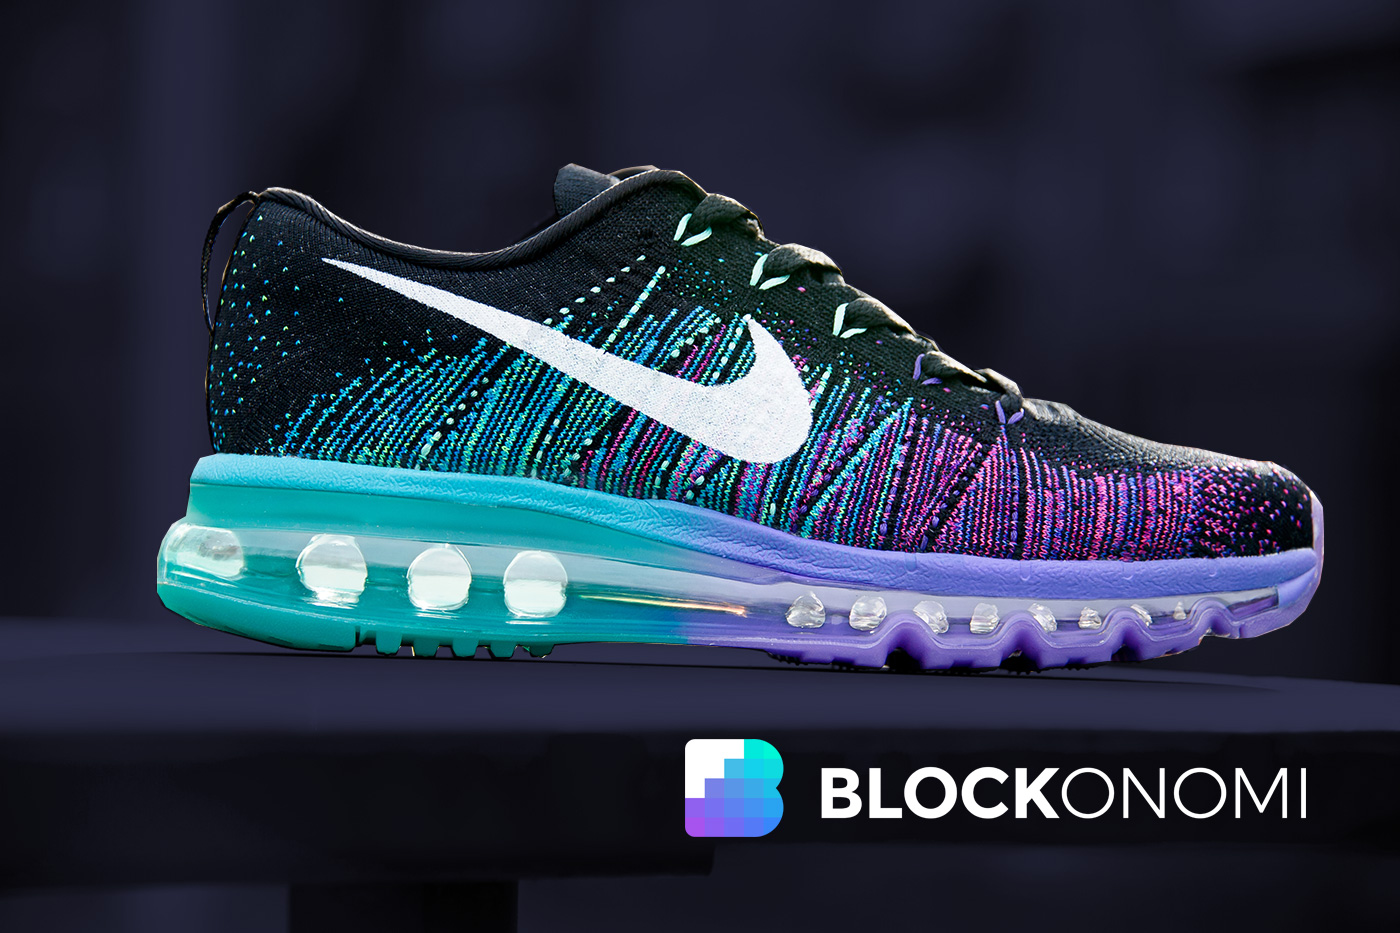 Nike Patent to Tokenize Limited-Edition